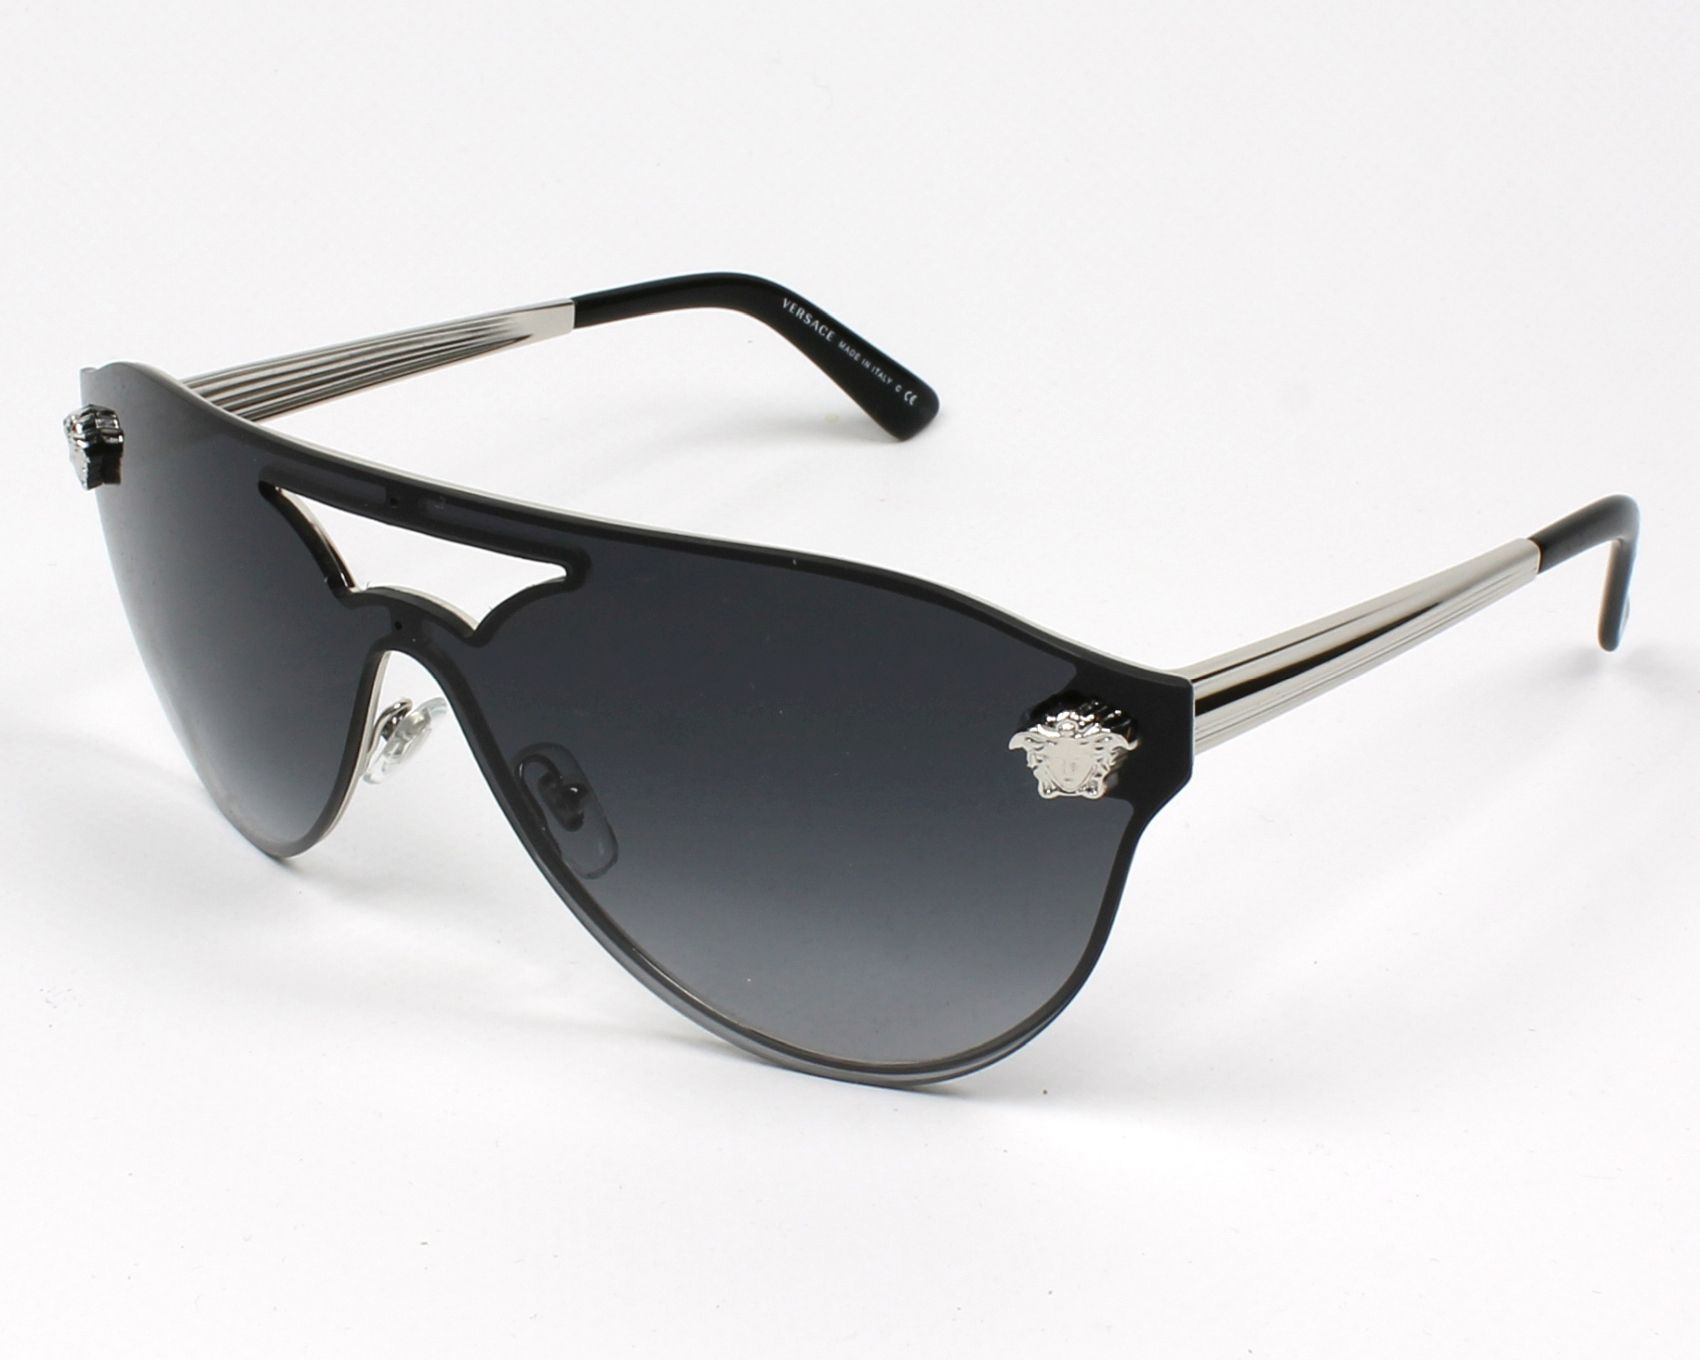 7d6940fff1 Versace Sunglasses Silver with Grey Lenses VE-2161 1000 8G - Visionet US